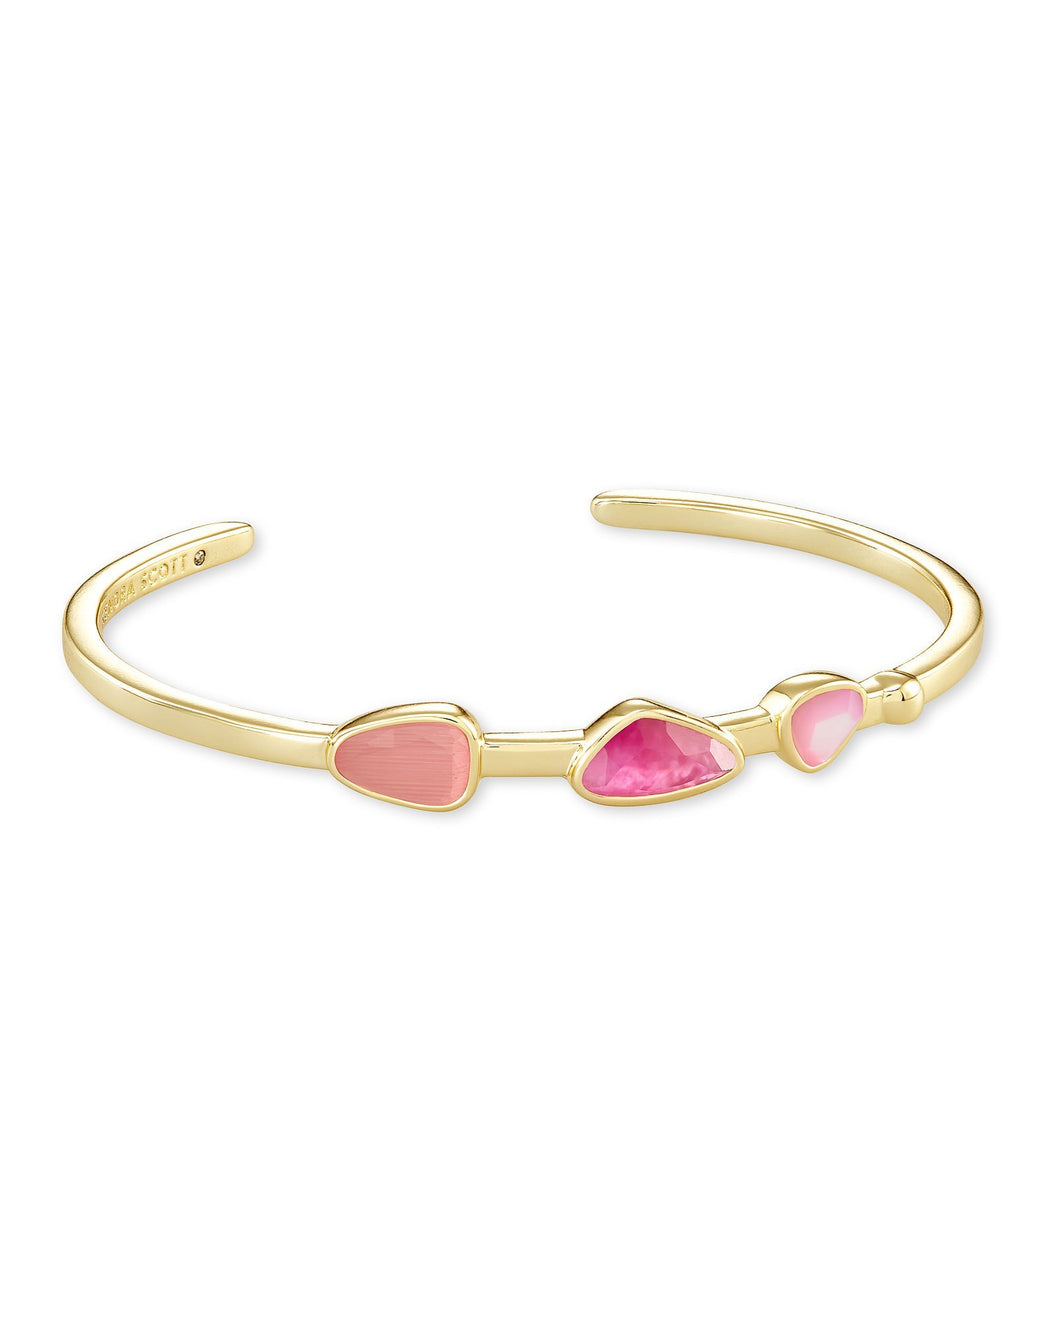 IVY CUFF BRACELET GOLD DEEP BLUSH MIX 4217706487 - M&R Jewelers